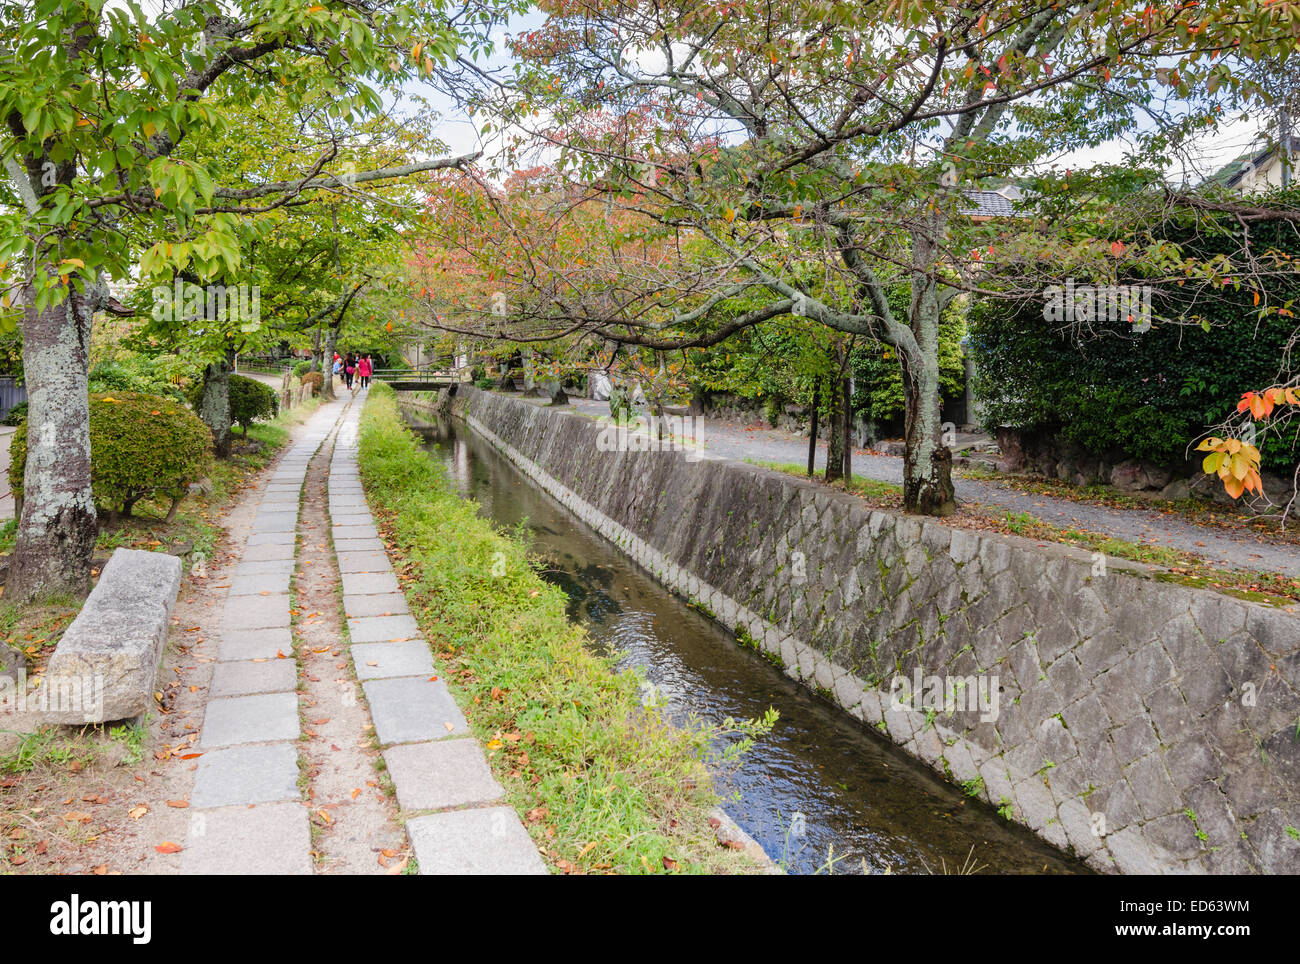 The Path of Philosophy, Kyoto, Kansai, Japan - Stock Image